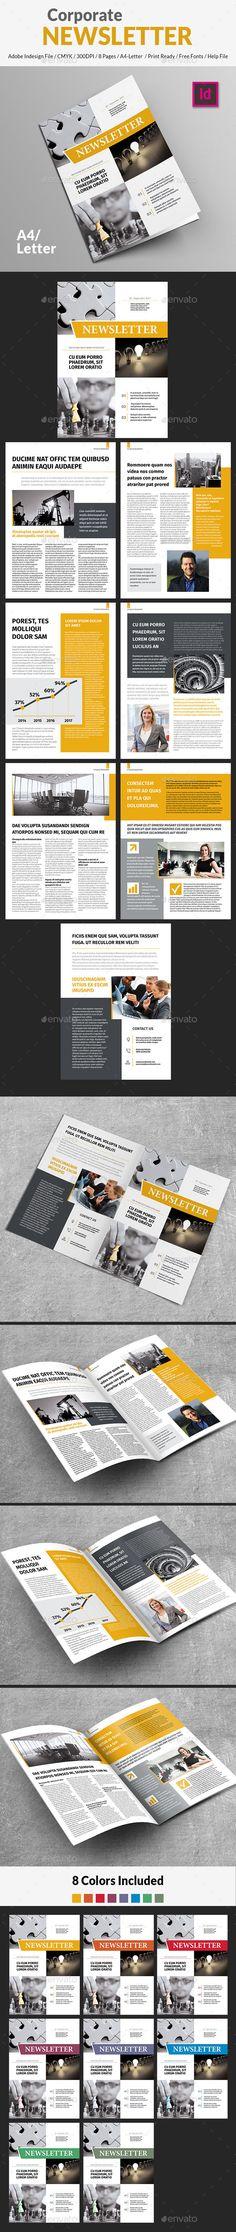 Corporate Newsletter Template InDesign INDD. Download here: https://graphicriver.net/item/corporate-newsletter/17571240?ref=ksioks